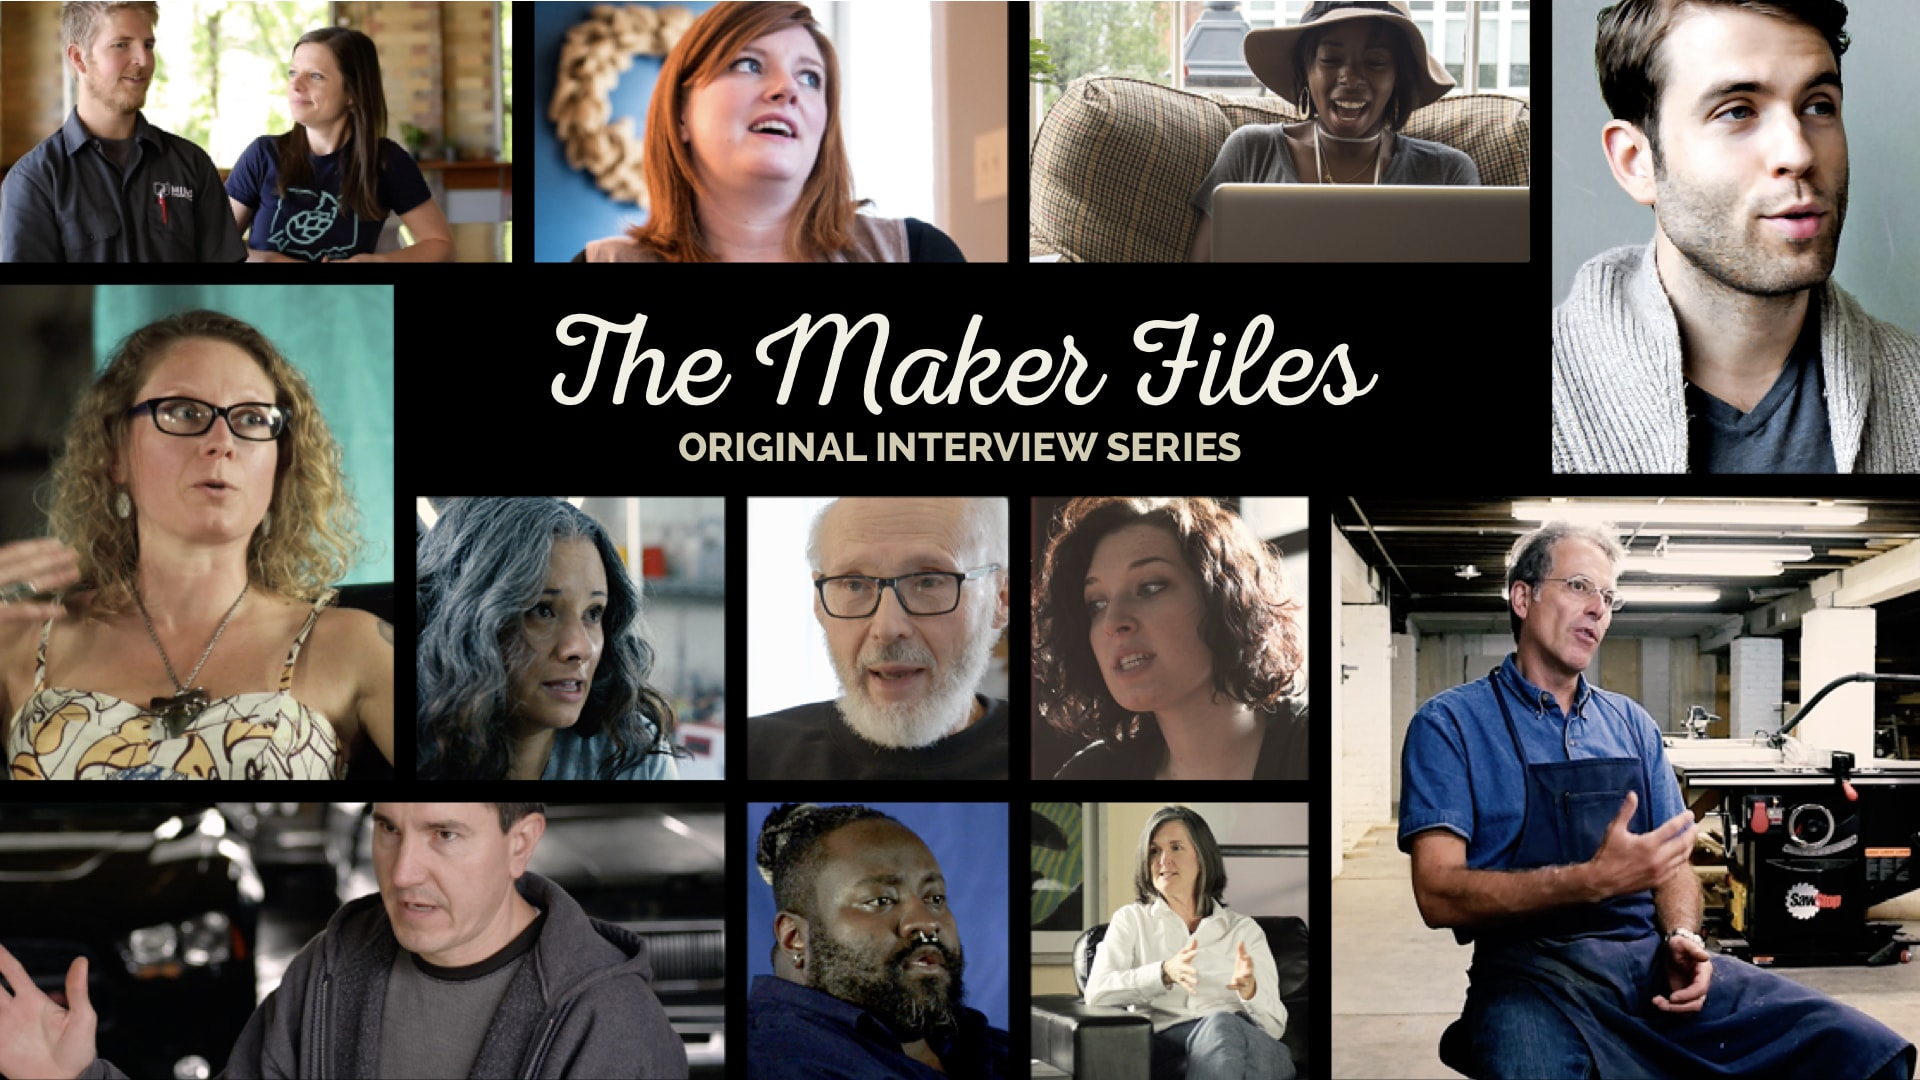 The Maker Files